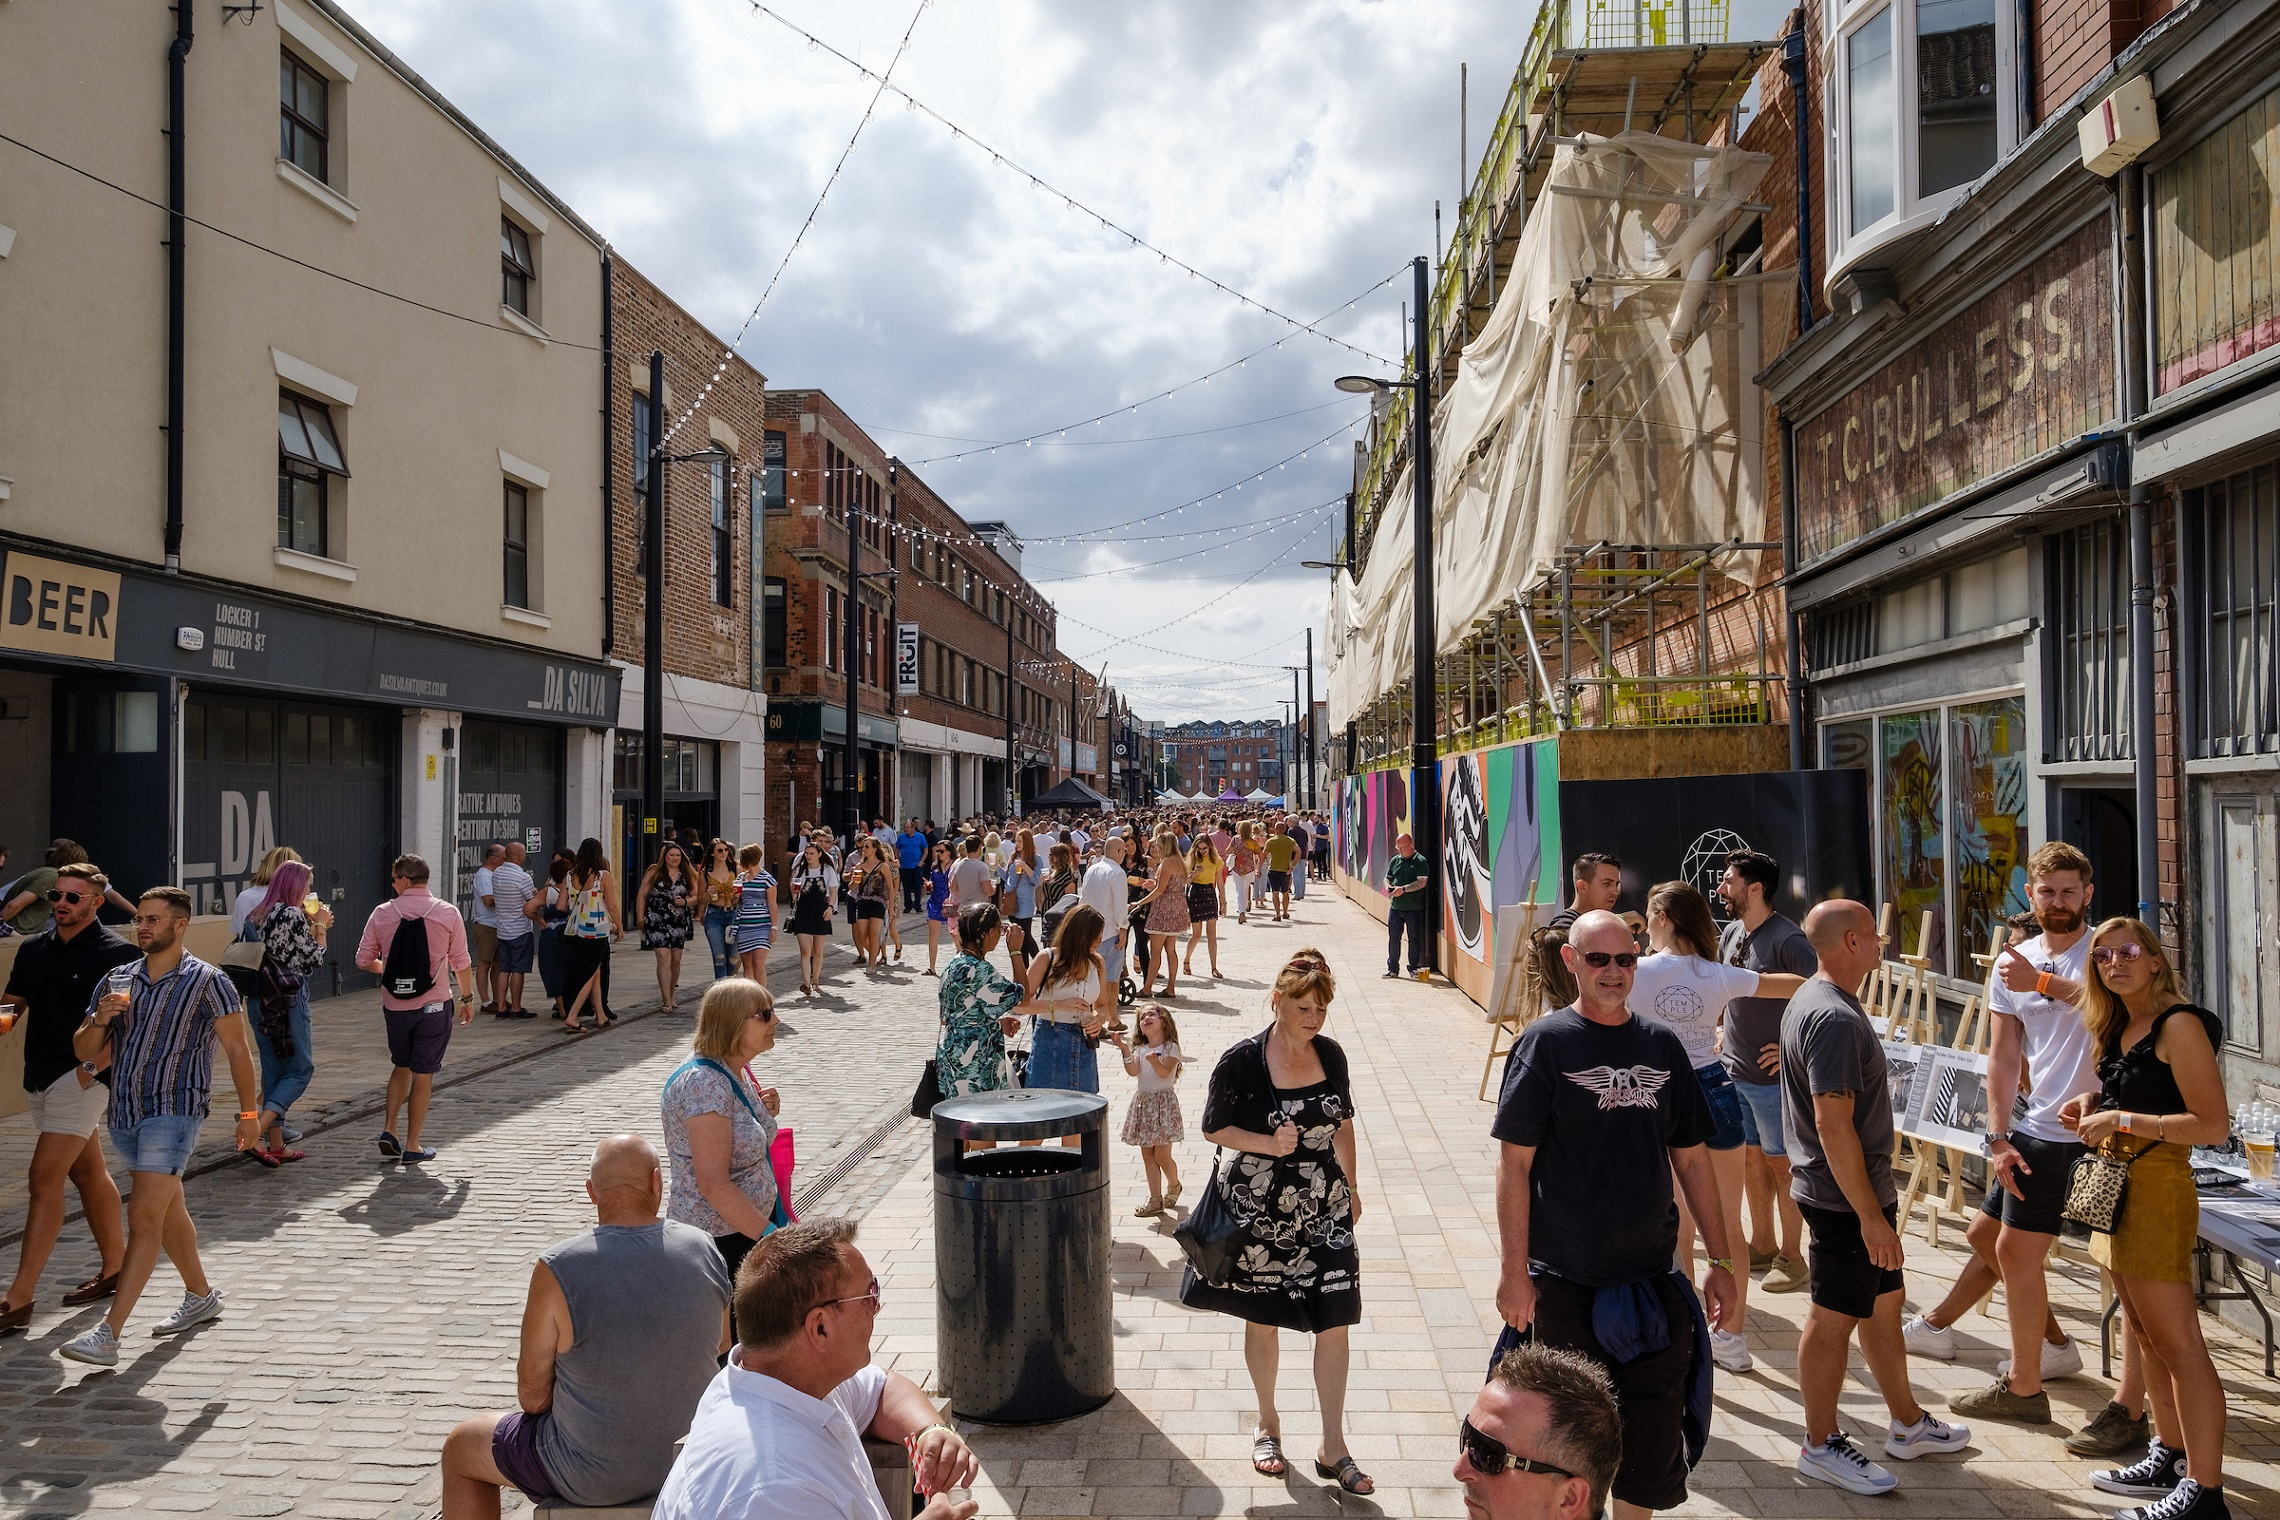 Organisers are urging festival-goers to ditch single-use plastic at this year's Humber Street Sesh.